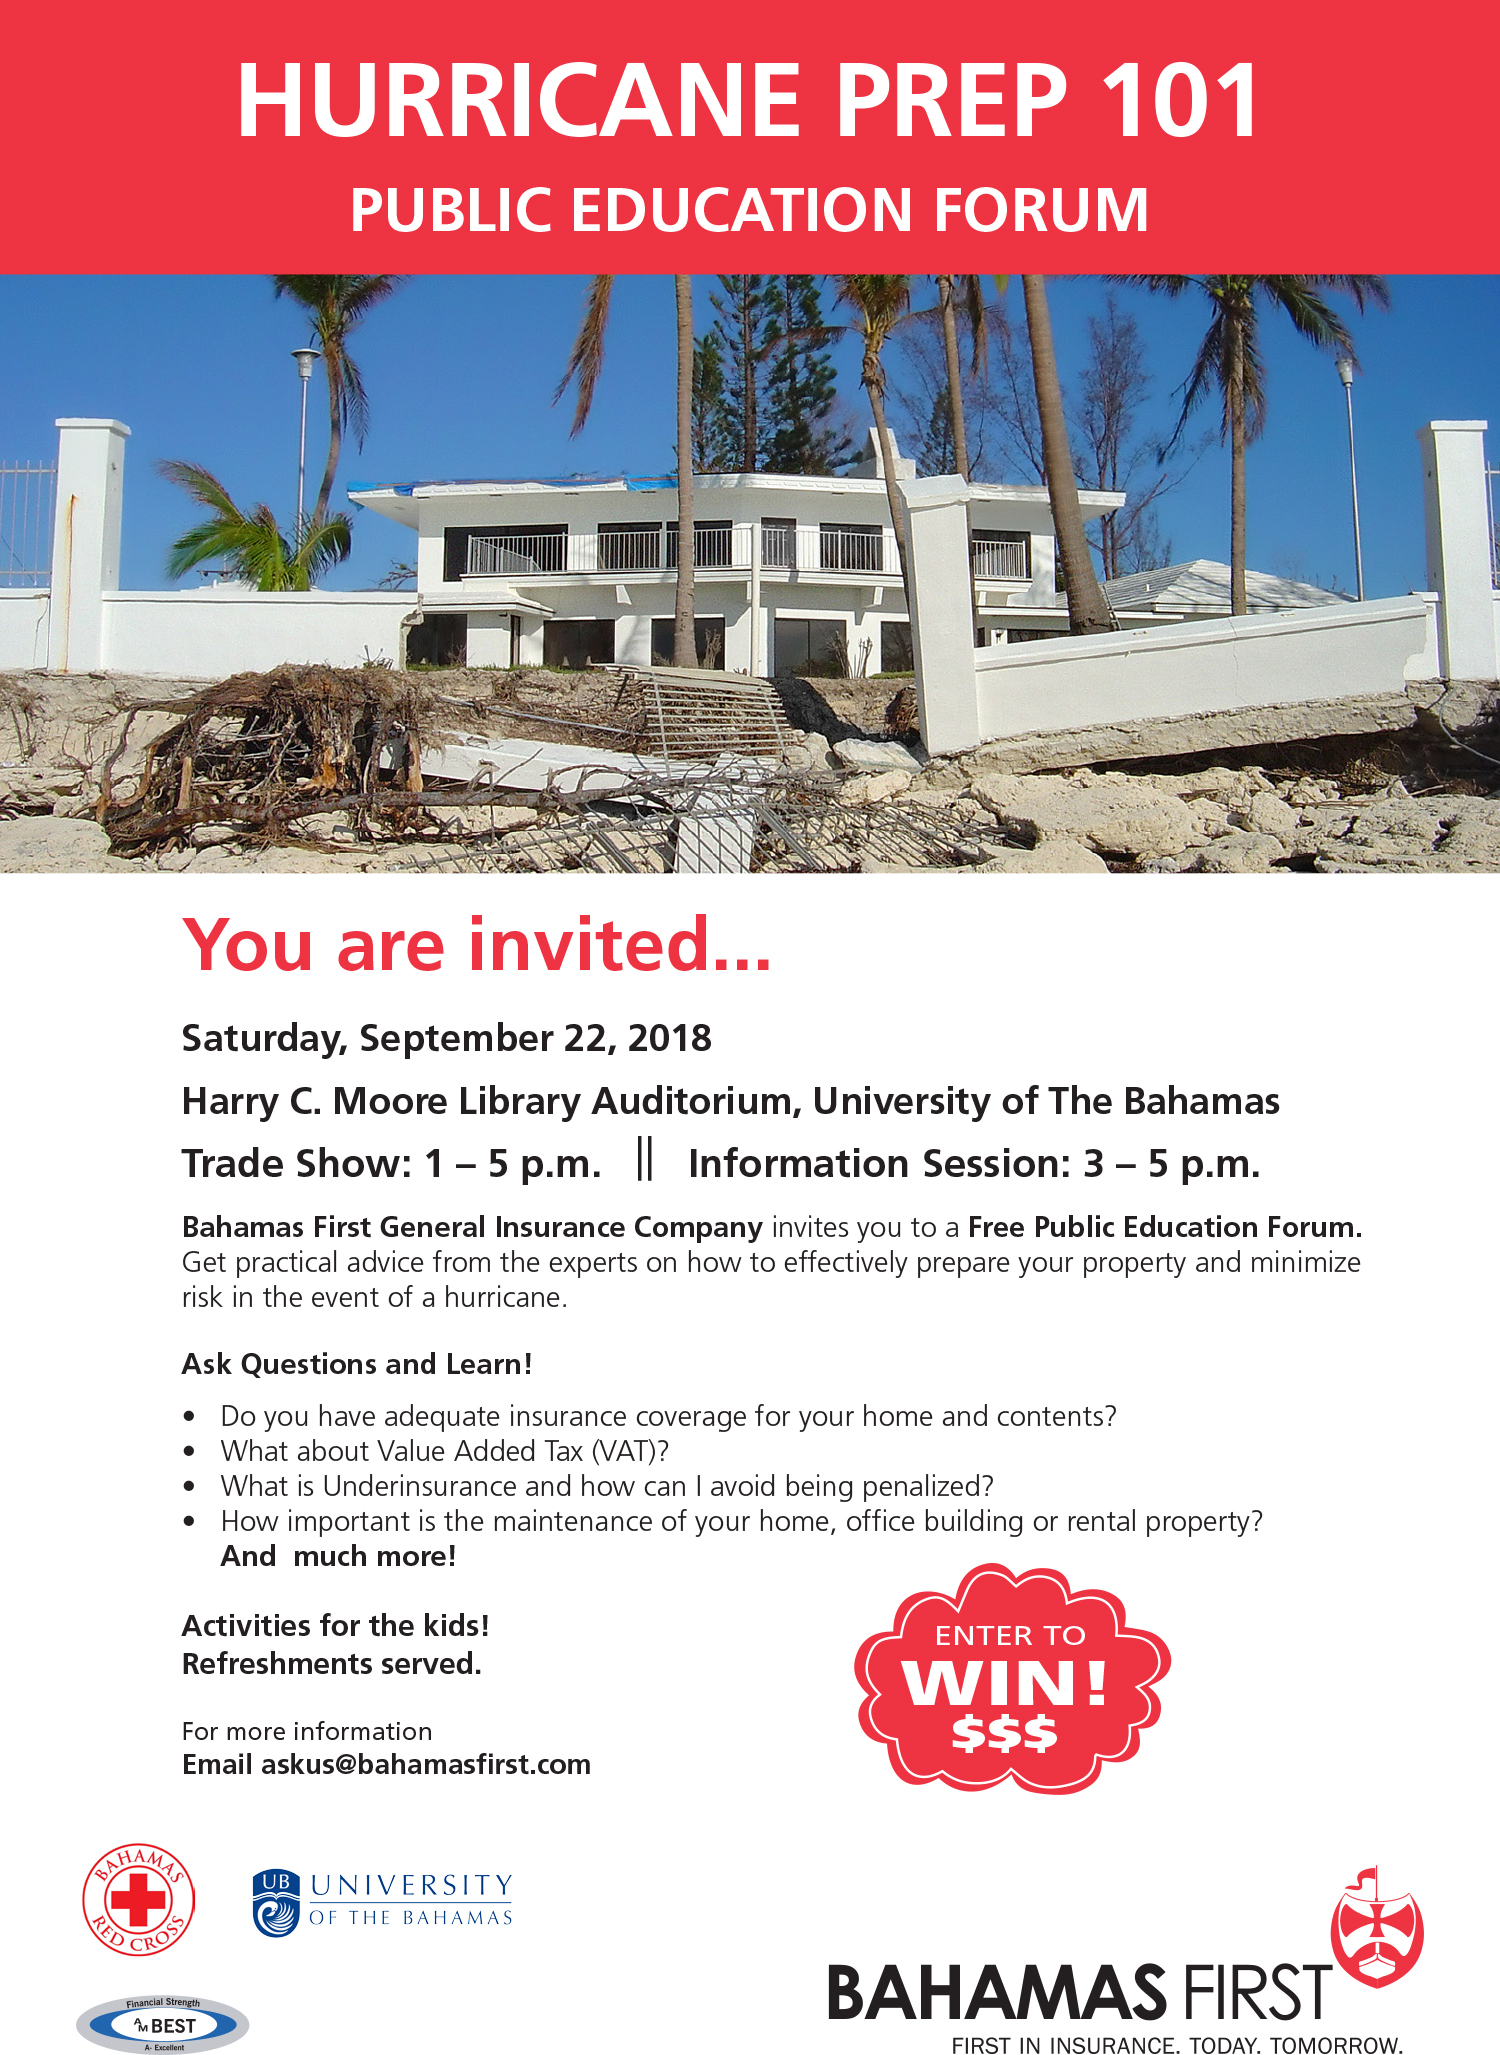 Hurricane Prep 101 - Free Public Education Forum Hosted by Bahamas First General Insurance Co.